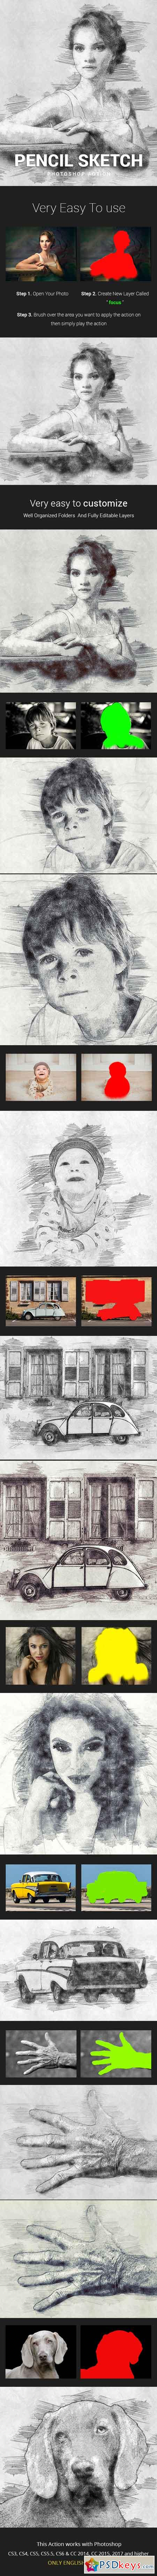 Pencil Sketch Photoshop Action Photo Effects 21683660